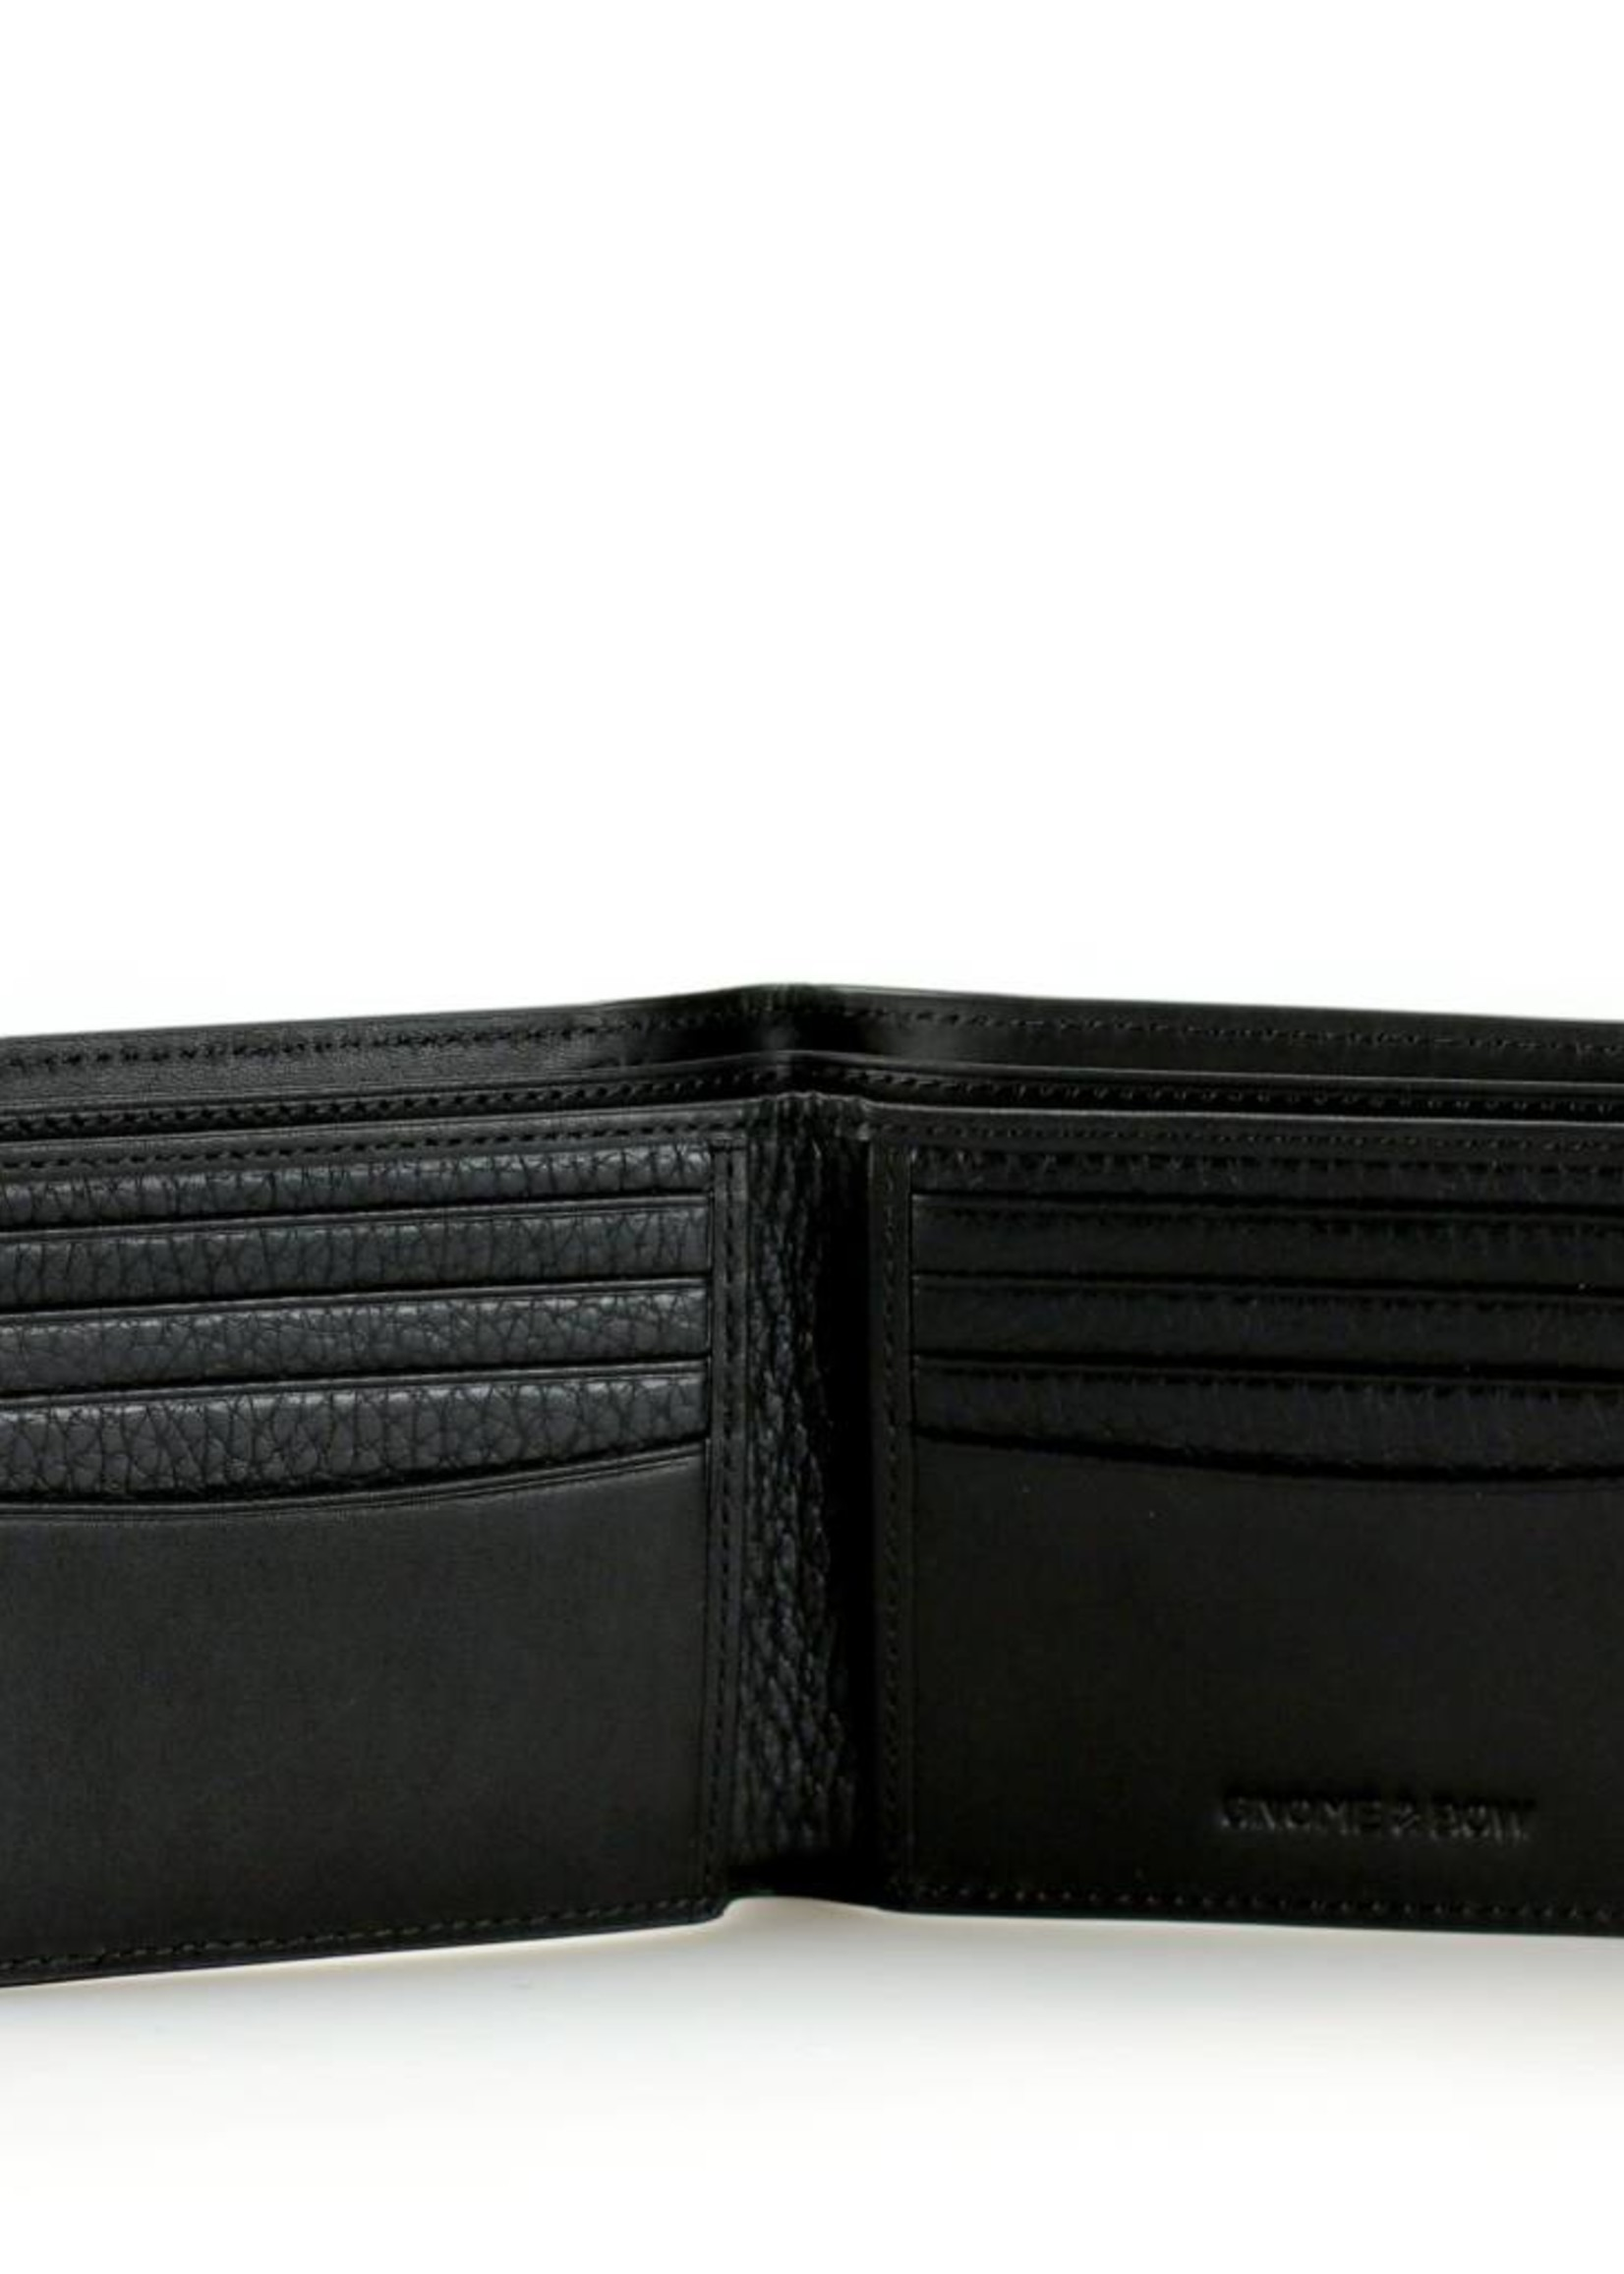 Gnome & Bow Gnome & Bow Treville Billfold